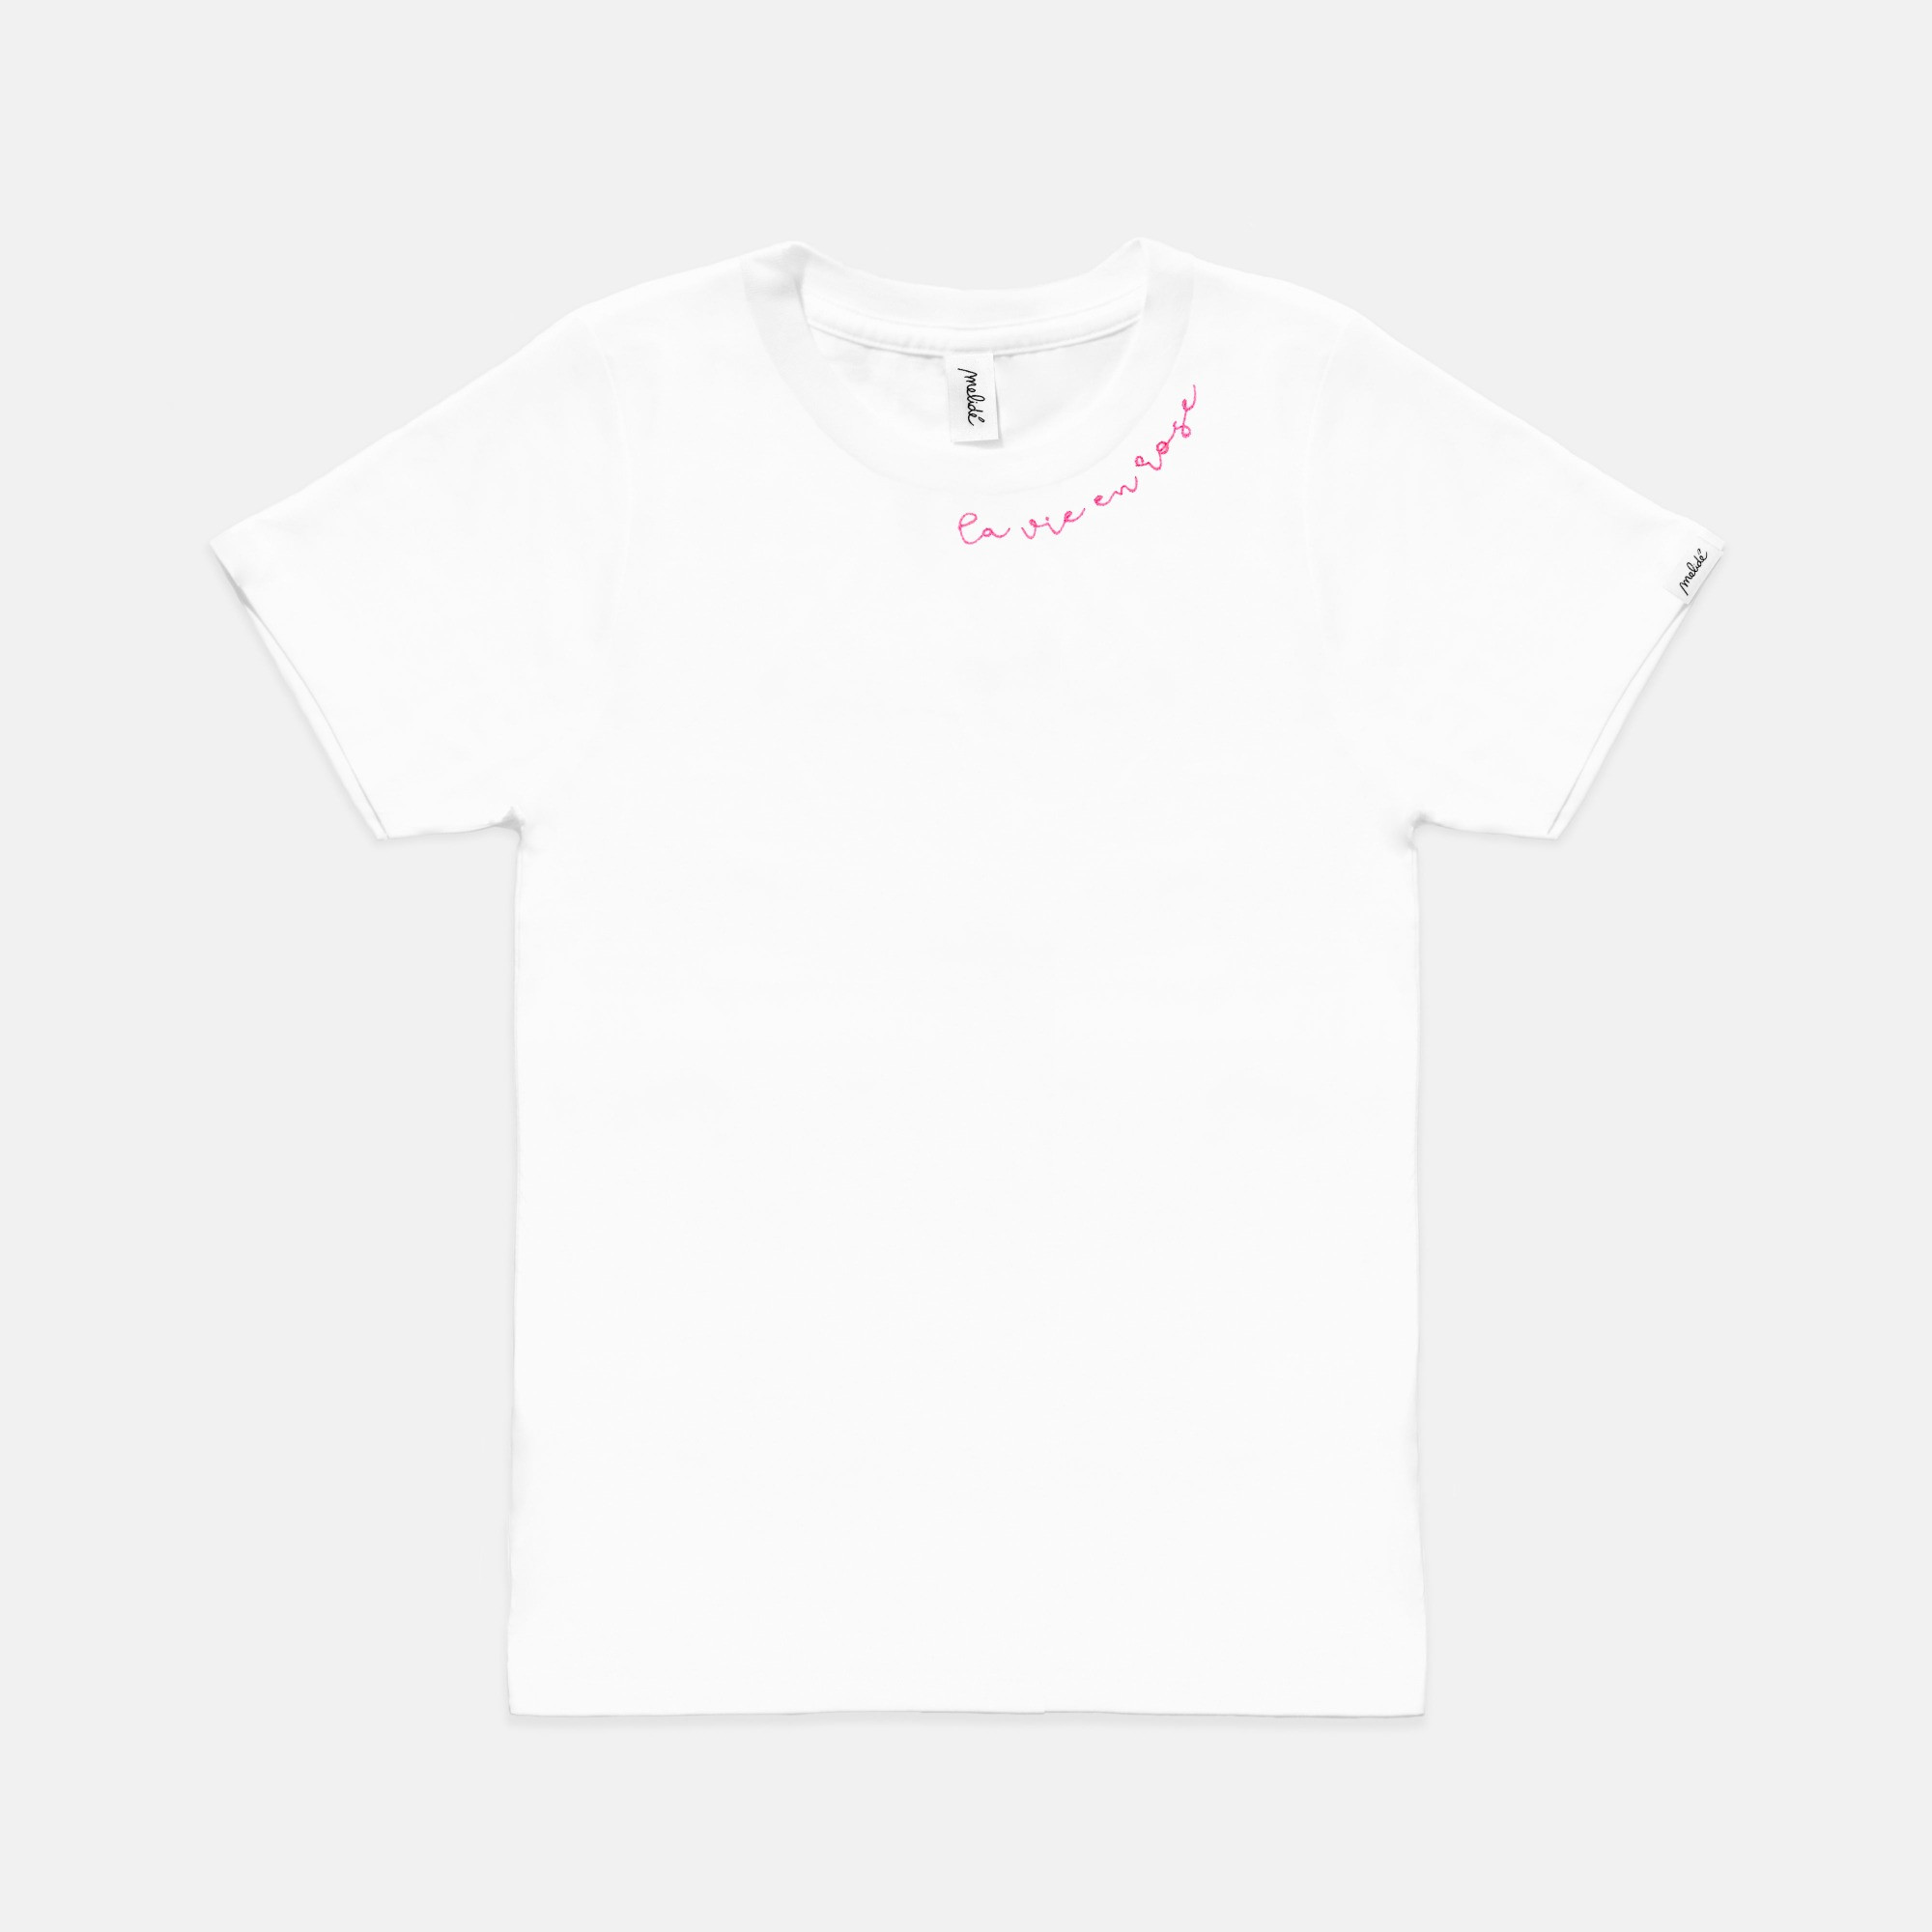 The LA VIE EN ROSE Tee